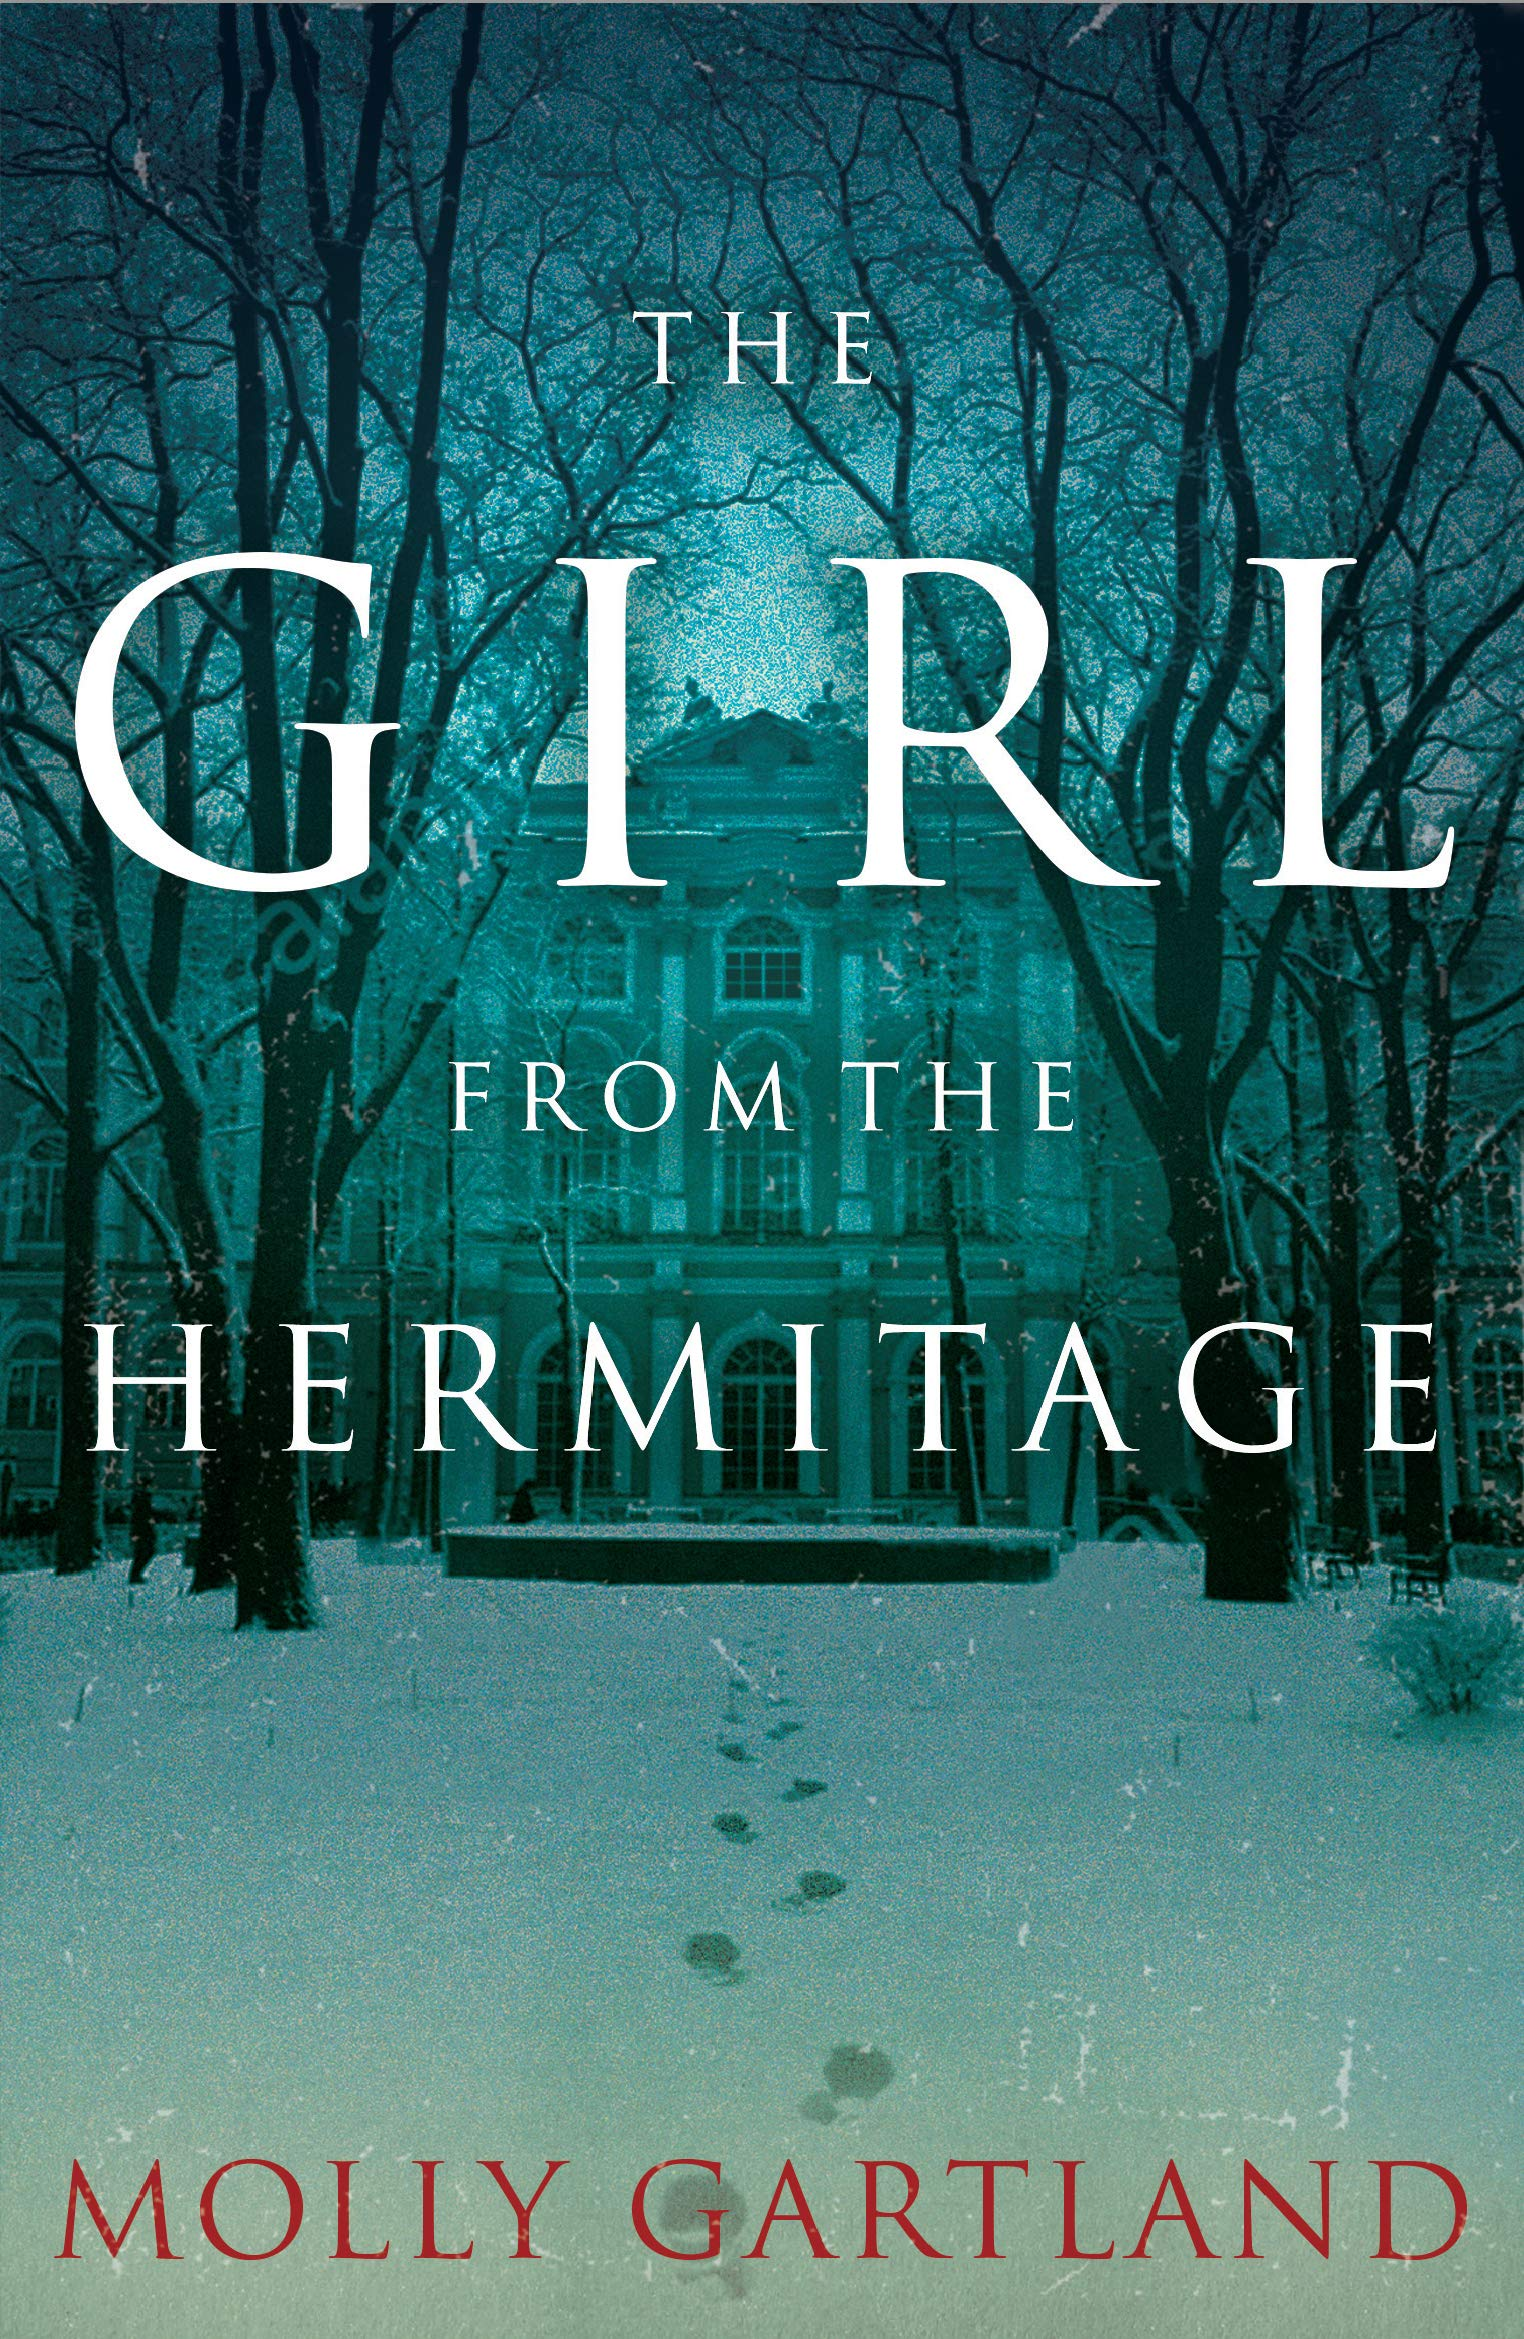 The Girl from the Hermitage: Amazon.co.uk: Molly Gartland ...